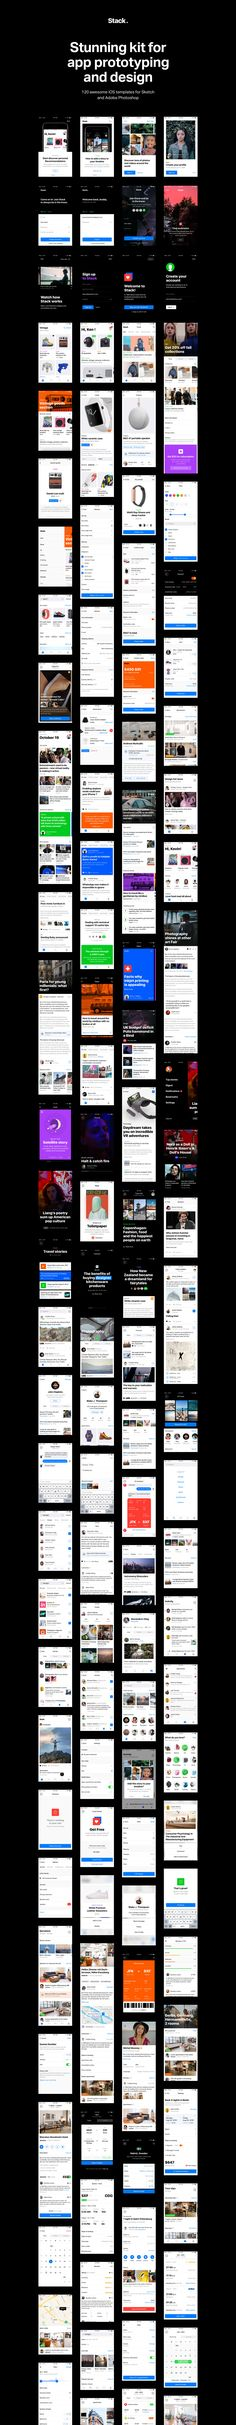 Stack contains more than 120 elaborate iOS templates in 6 categories that will meet any needs you have in the design process. How it works Fast prototyping Perfect instrument for creating an interactive prototype using popular online tools like Invision, Marvel, etc. Choose templates, upload it to one of these apps, mark any transition and …